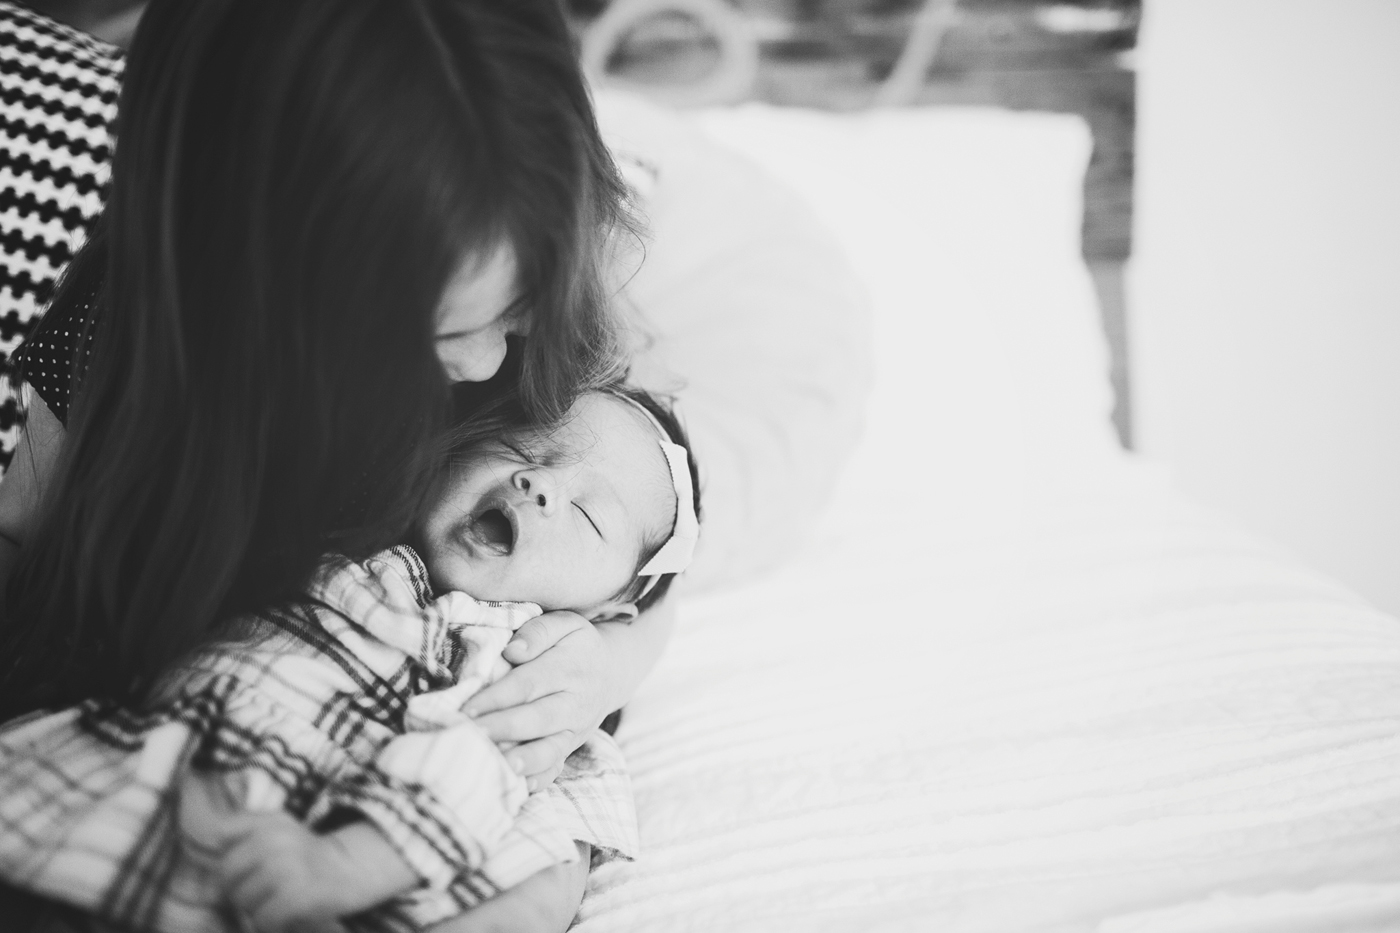 Liz Anne Photography | Family Portraits | Lifestyle | Kids | Albuquerque | New Mexico 07.jpg